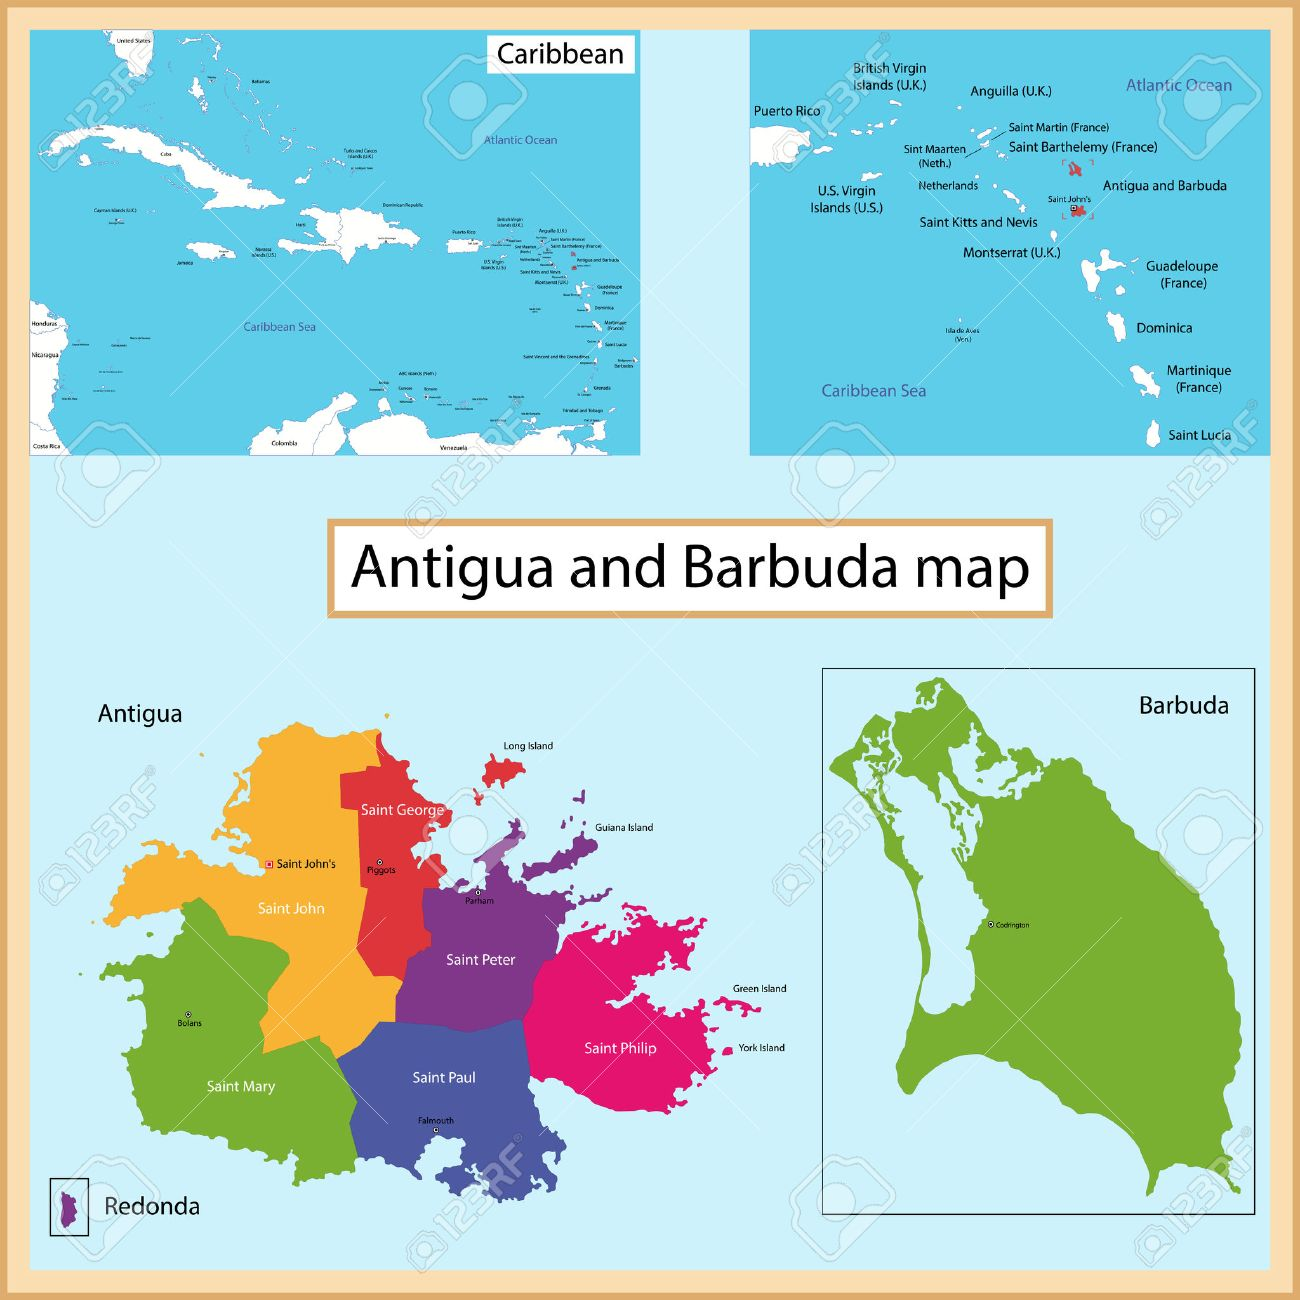 Map Of Antigua And Barbuda Drawn With High Detail And Accuracy - Antigua barbuda map caribbean sea